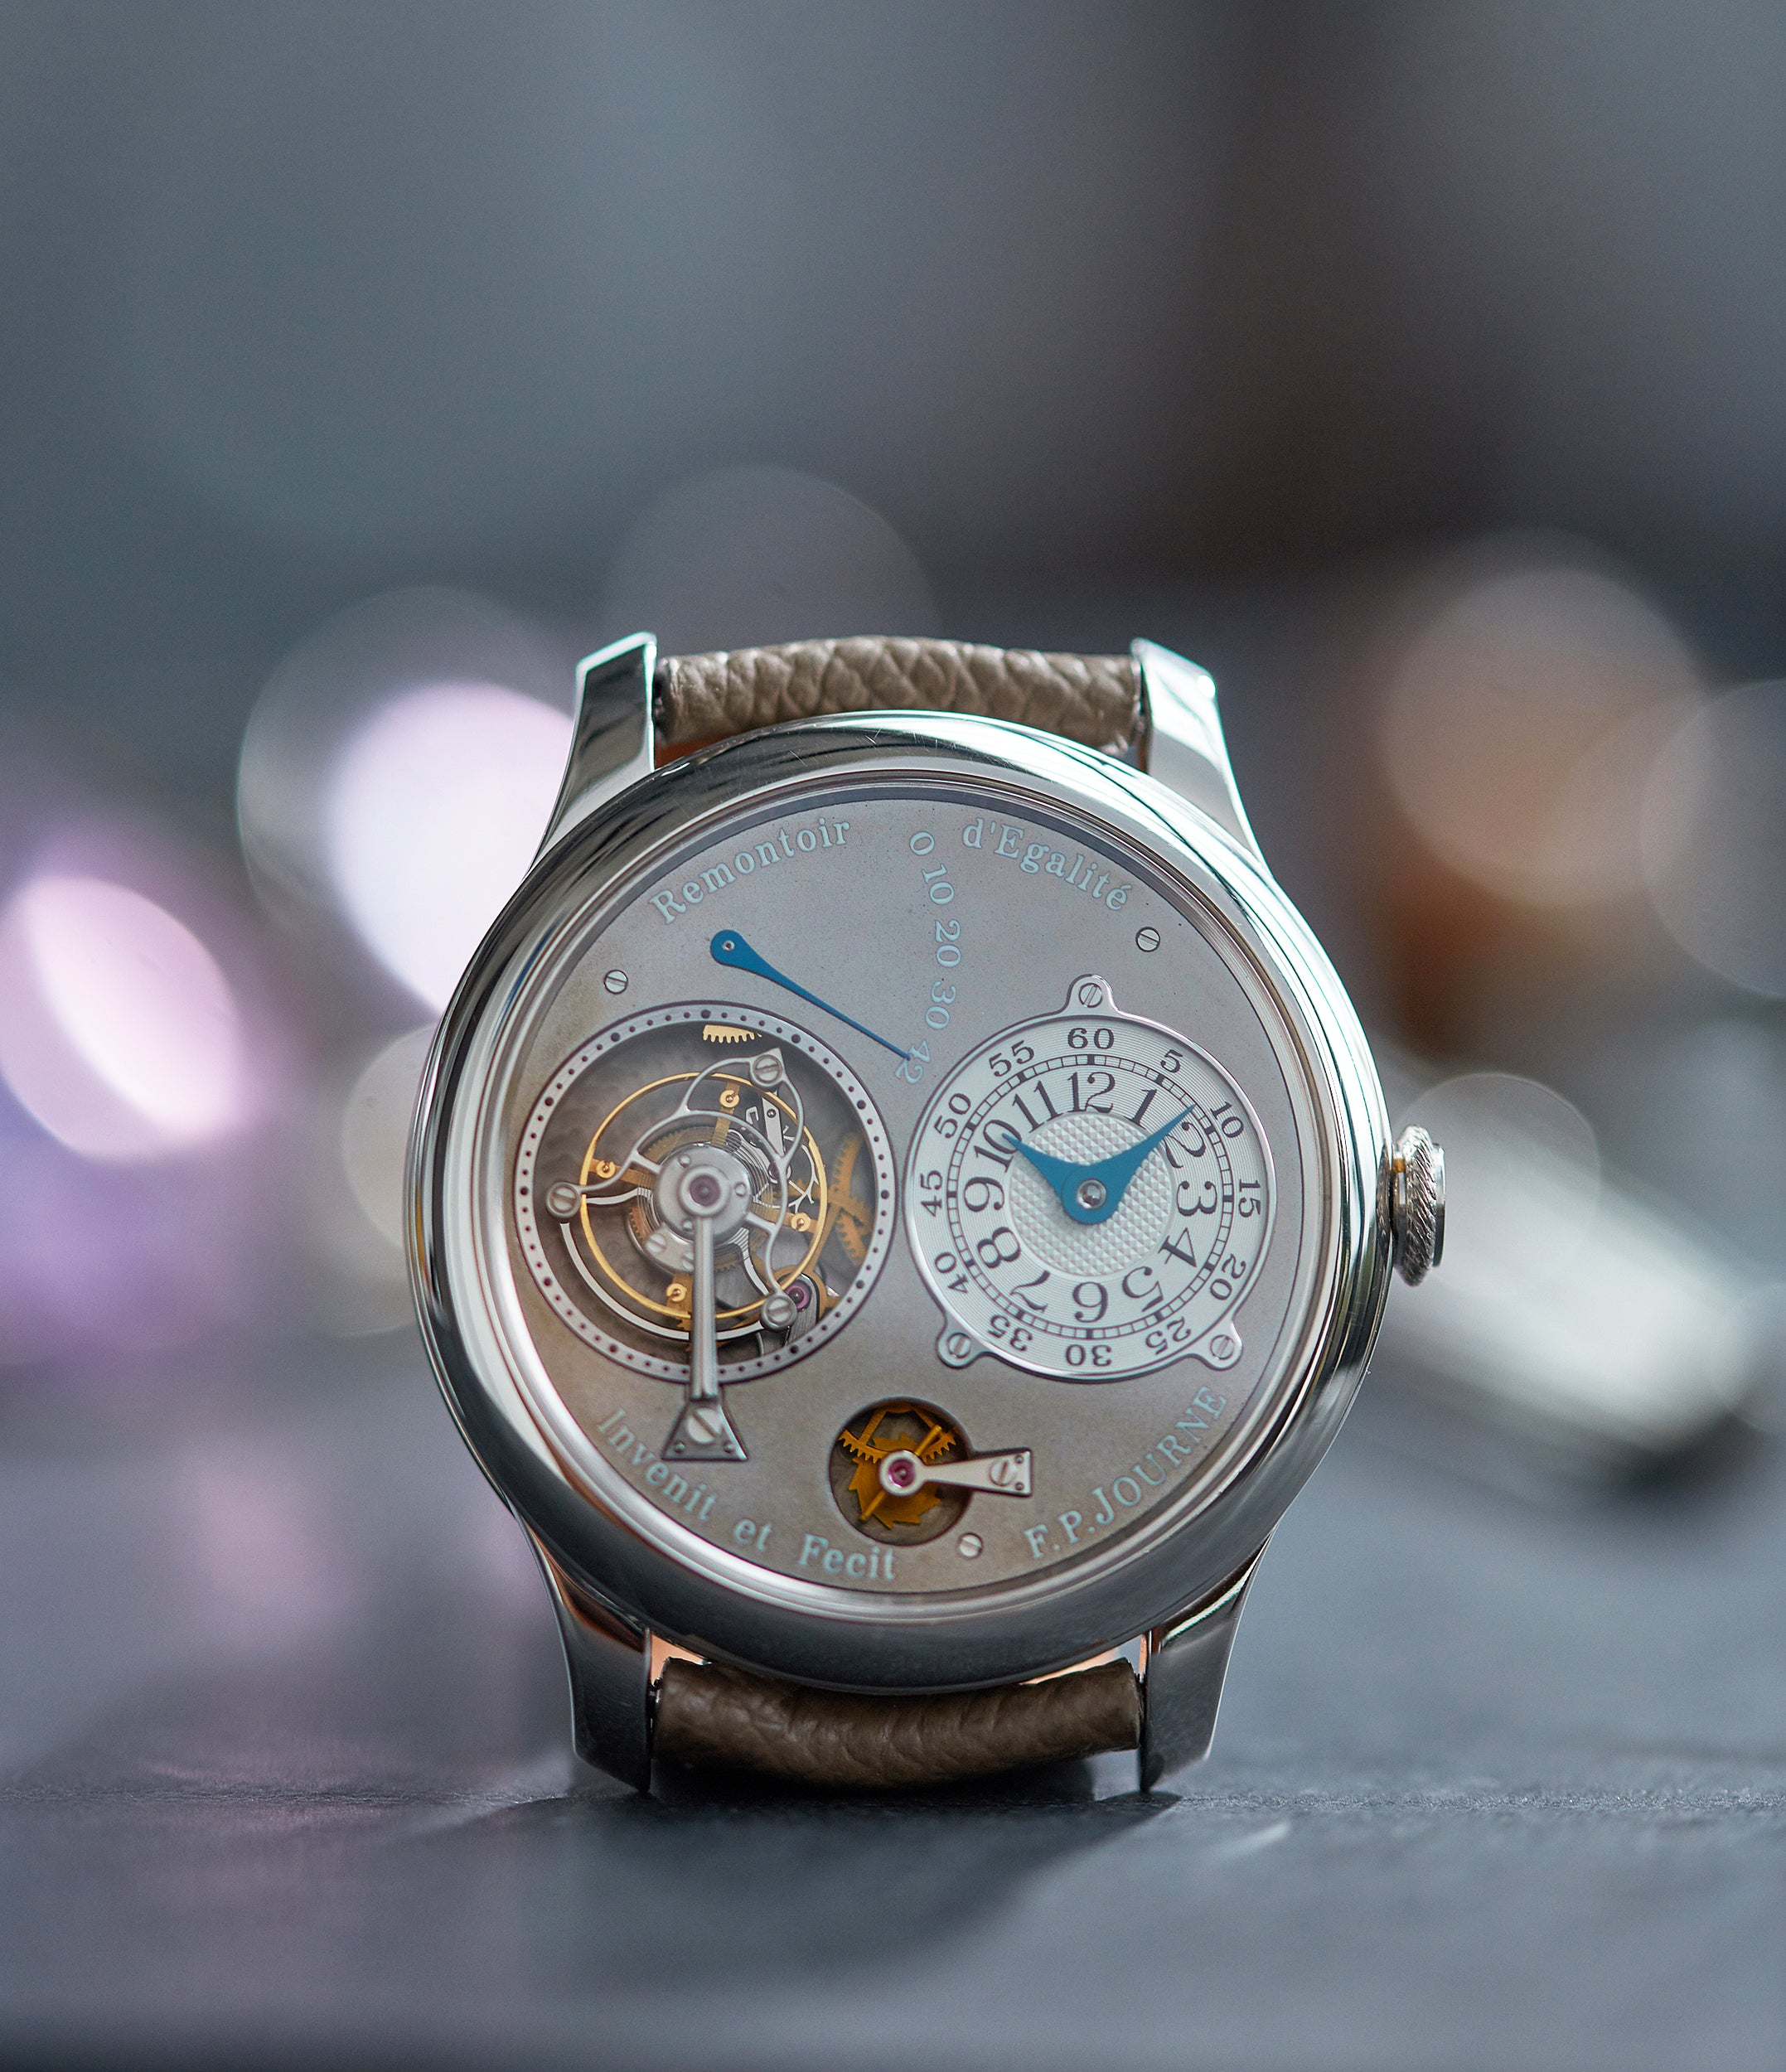 Tourbillon Remontoire Souverain F. P. Journe rhutenium dial brass movement pre-owned watch at A Collected Man London specialist independent watchmakers